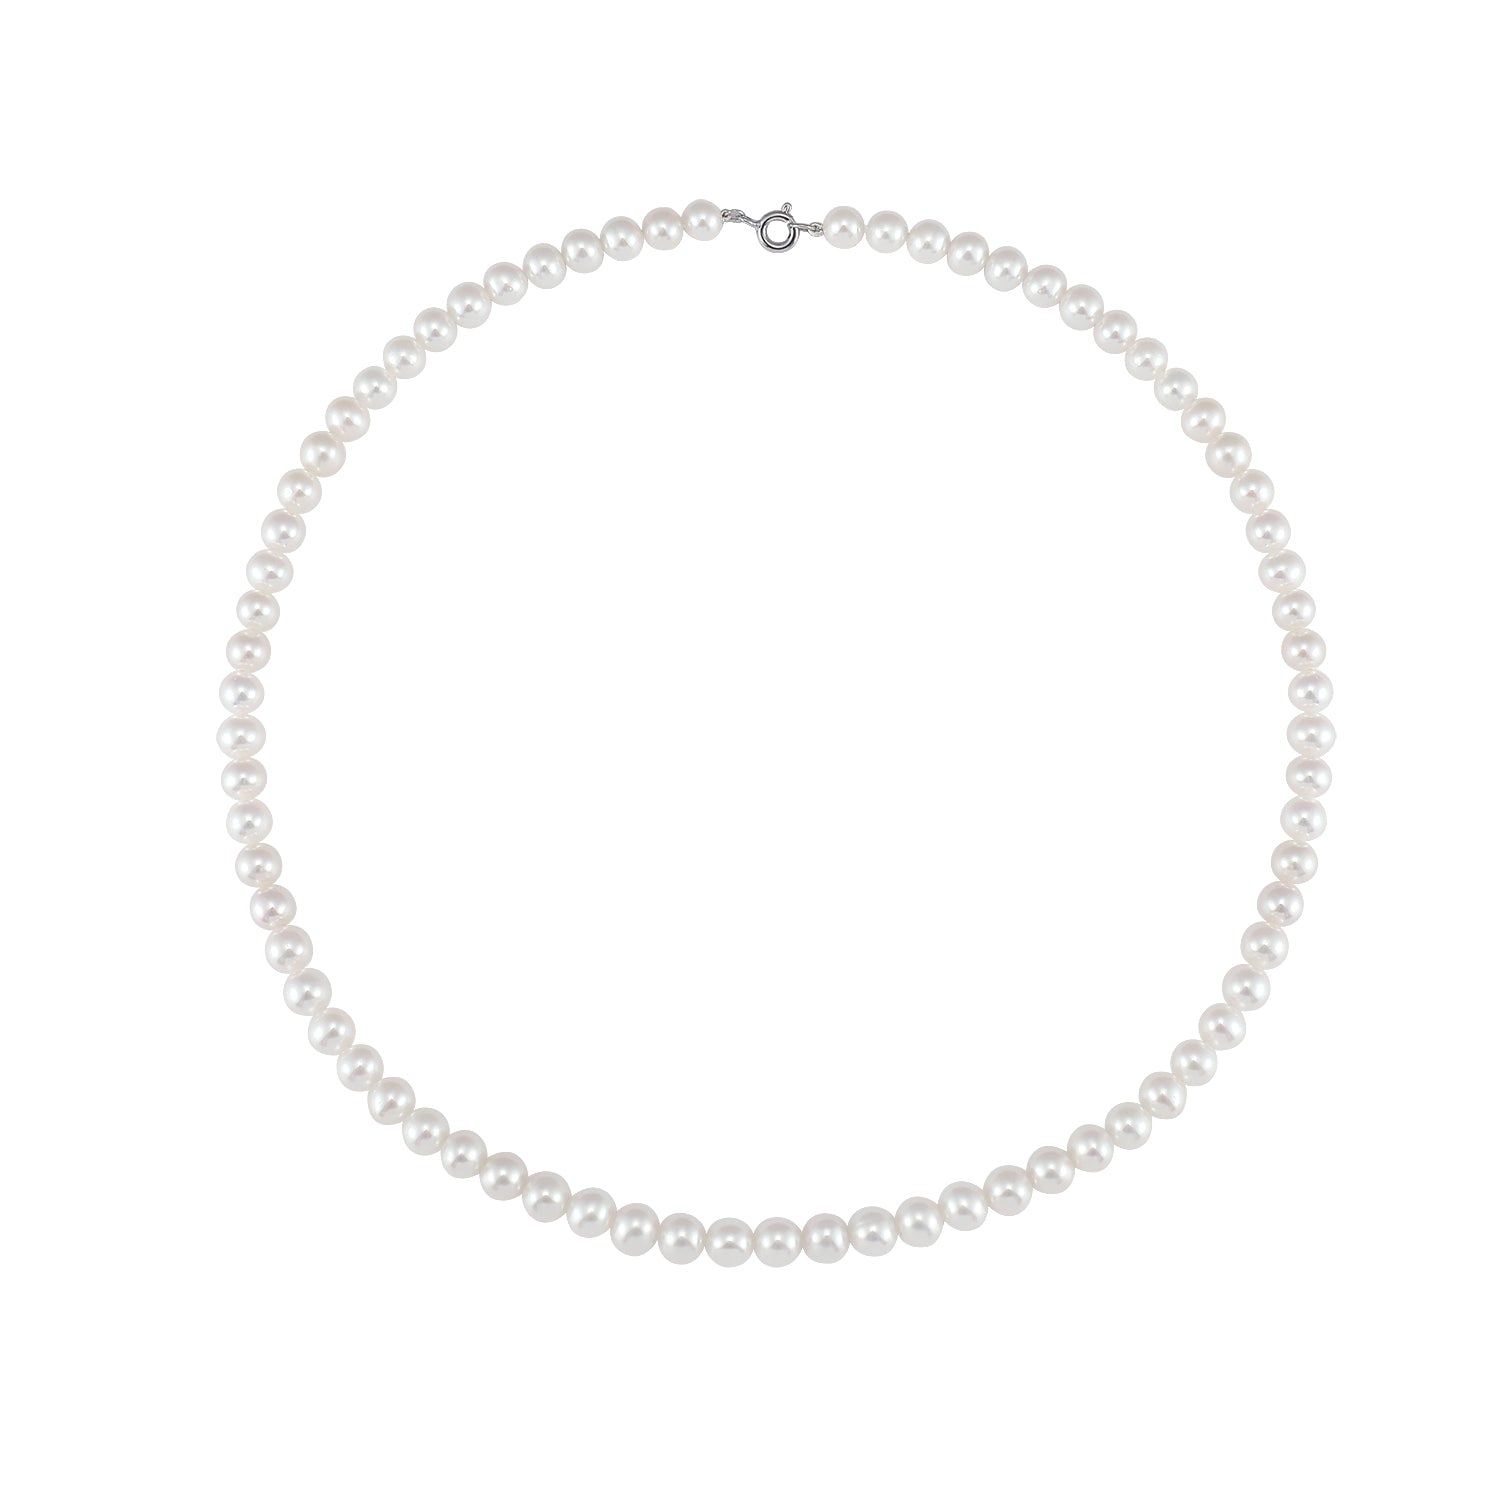 Magna | Ocean Necklace  | White Pearl Small | White Rhodium Plated 925 Silver